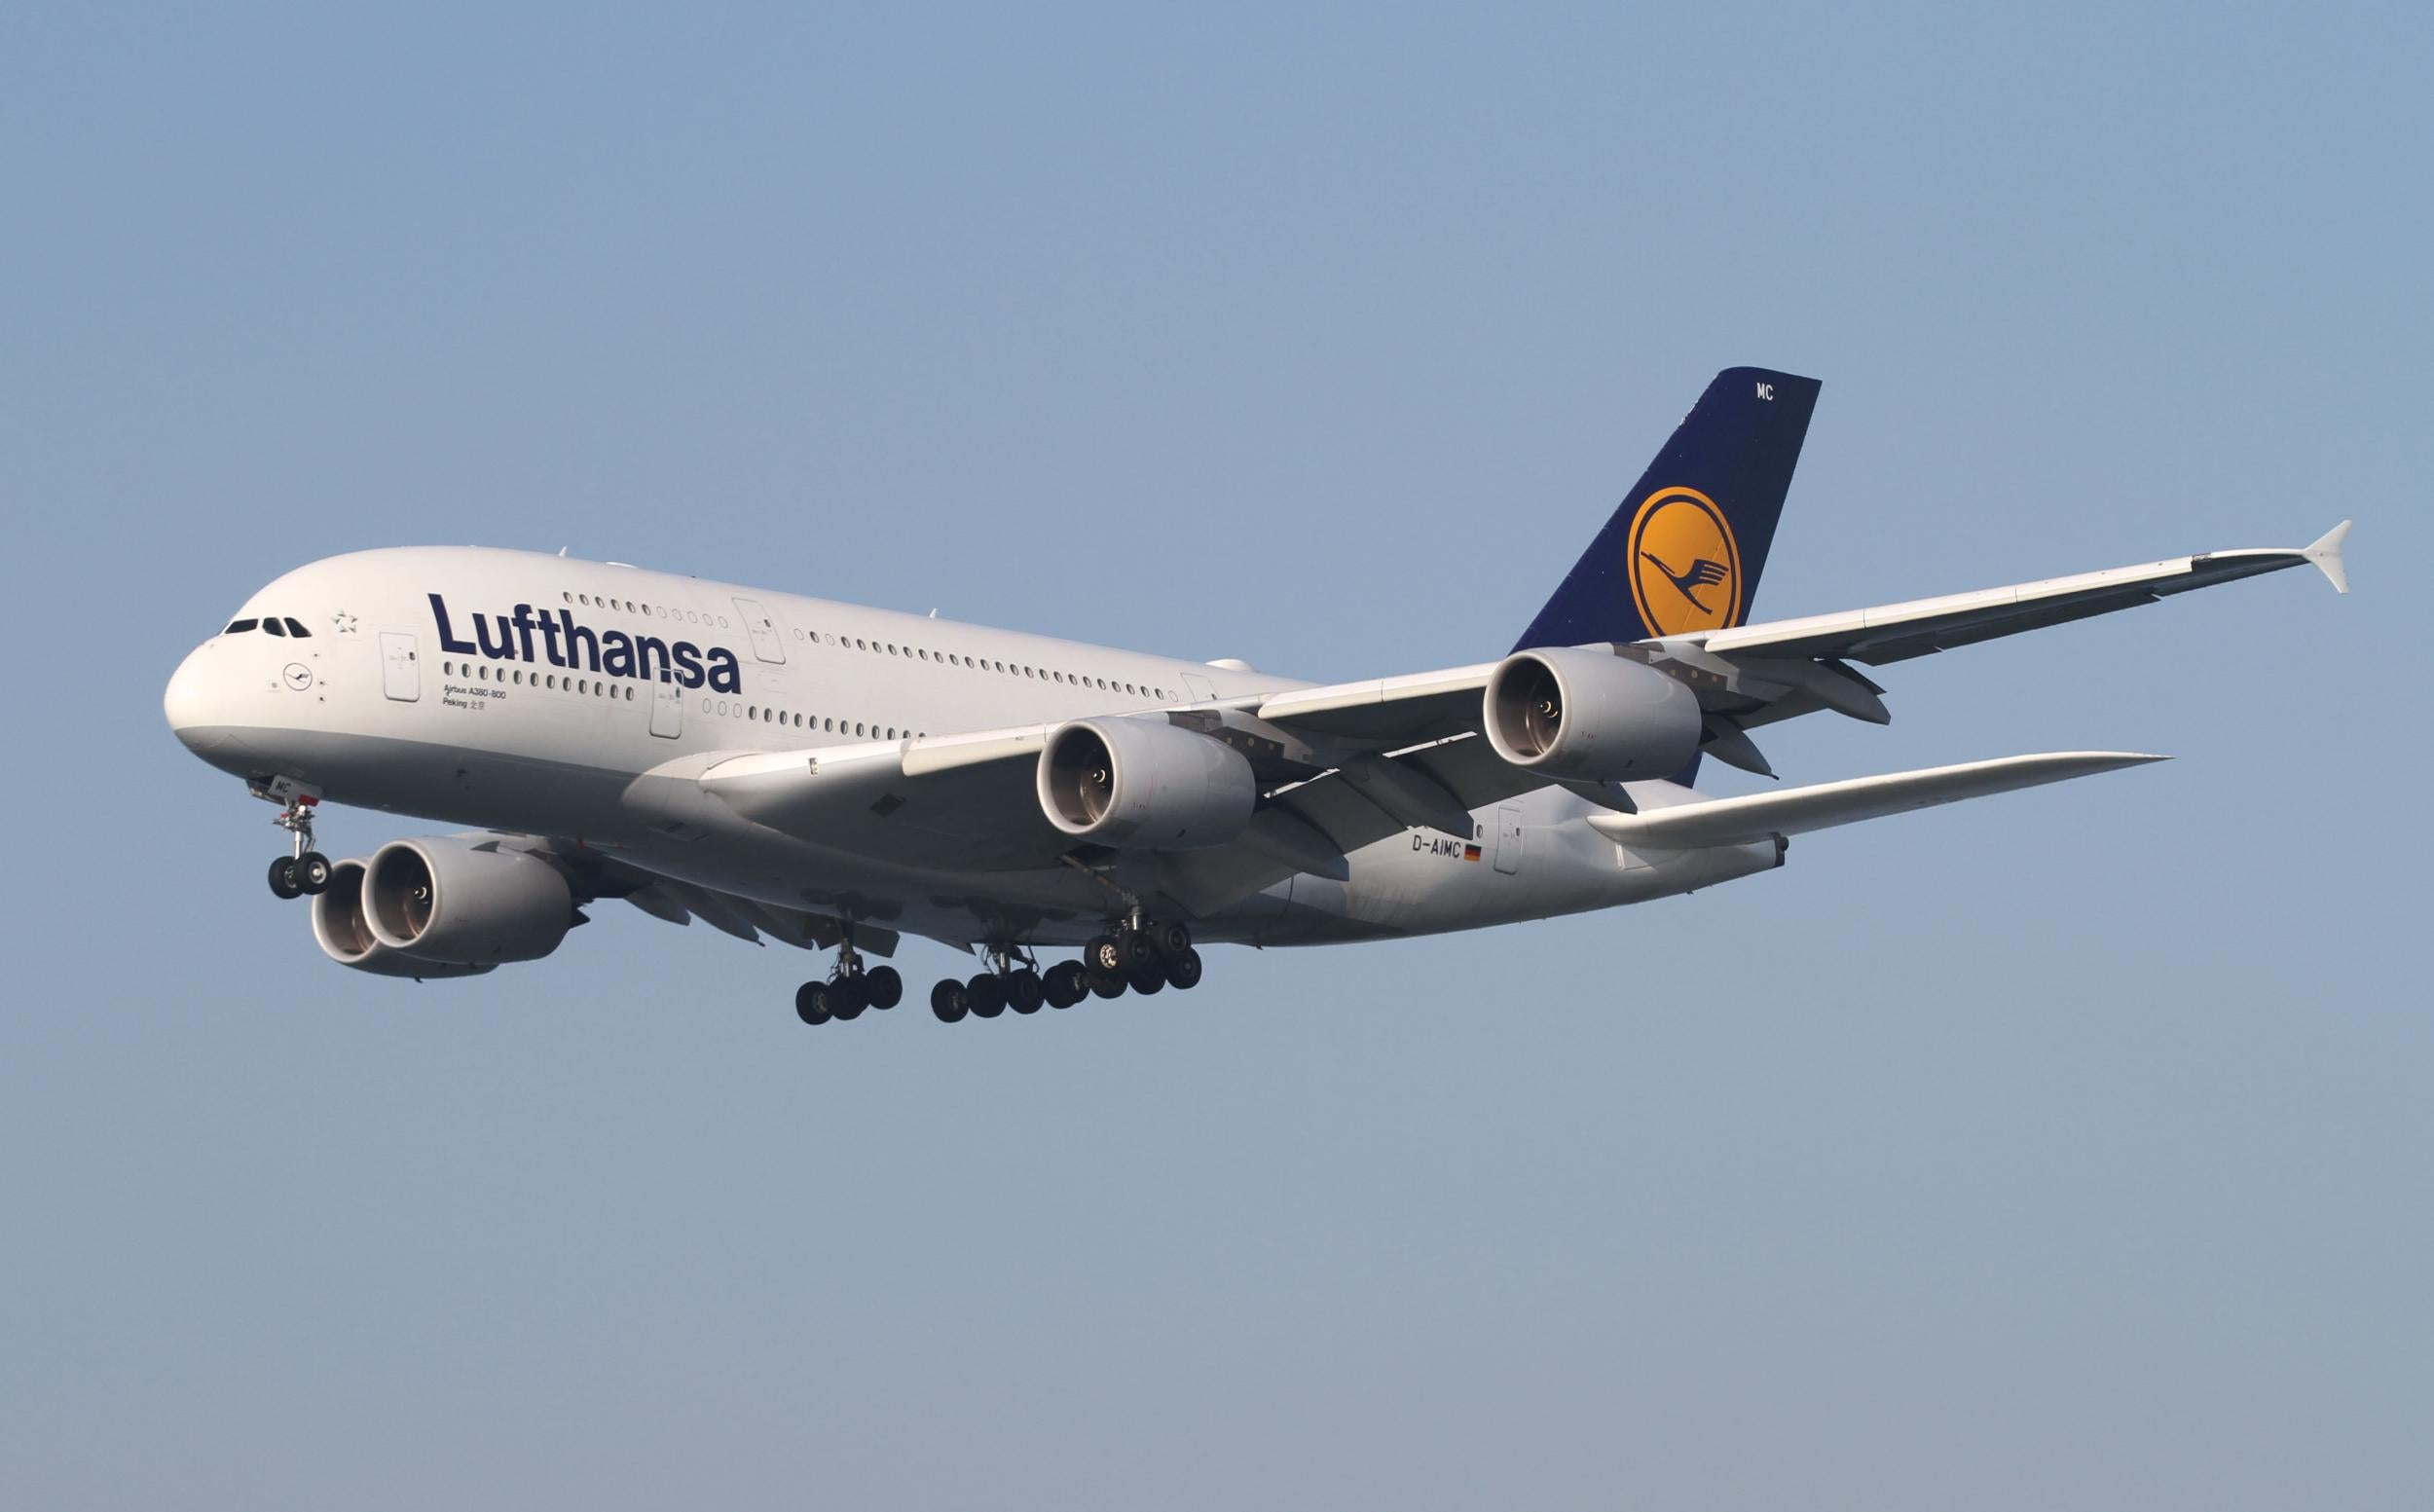 Lufthansa CEO calls low-cost flights 'economically, ecologically and politically irresponsible'